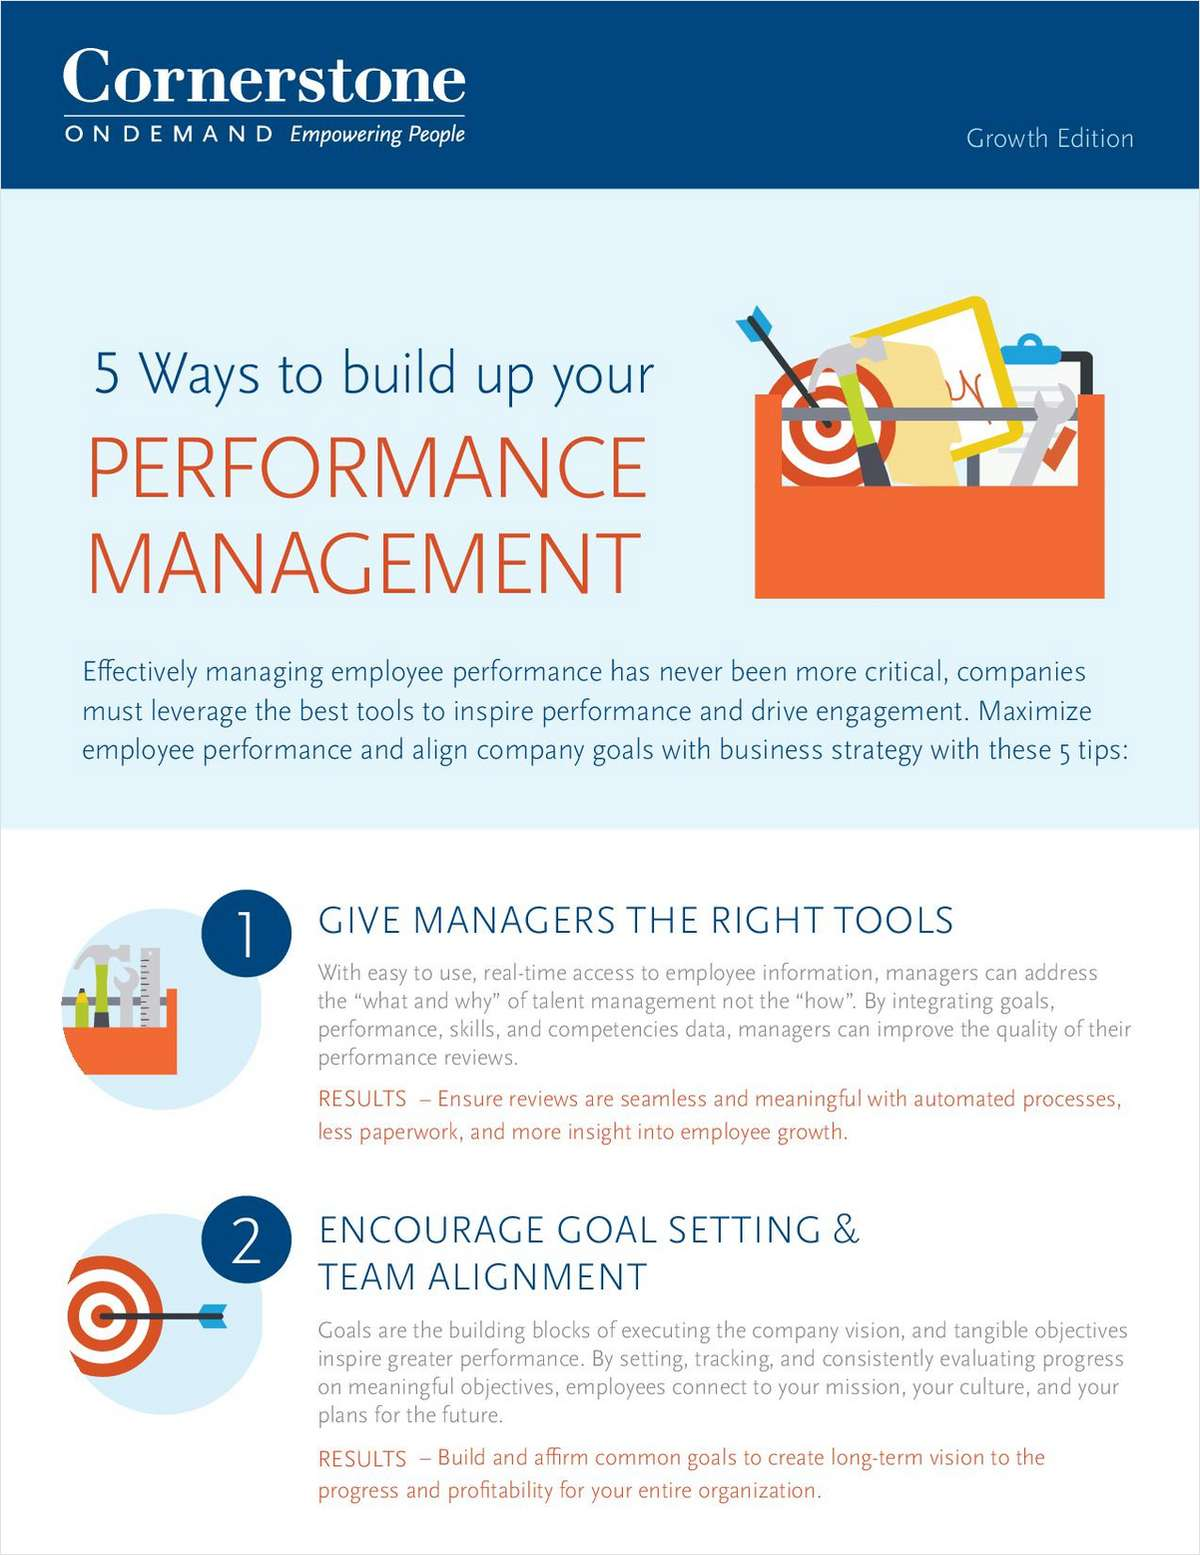 5 Ways to Build up Your Performance Management